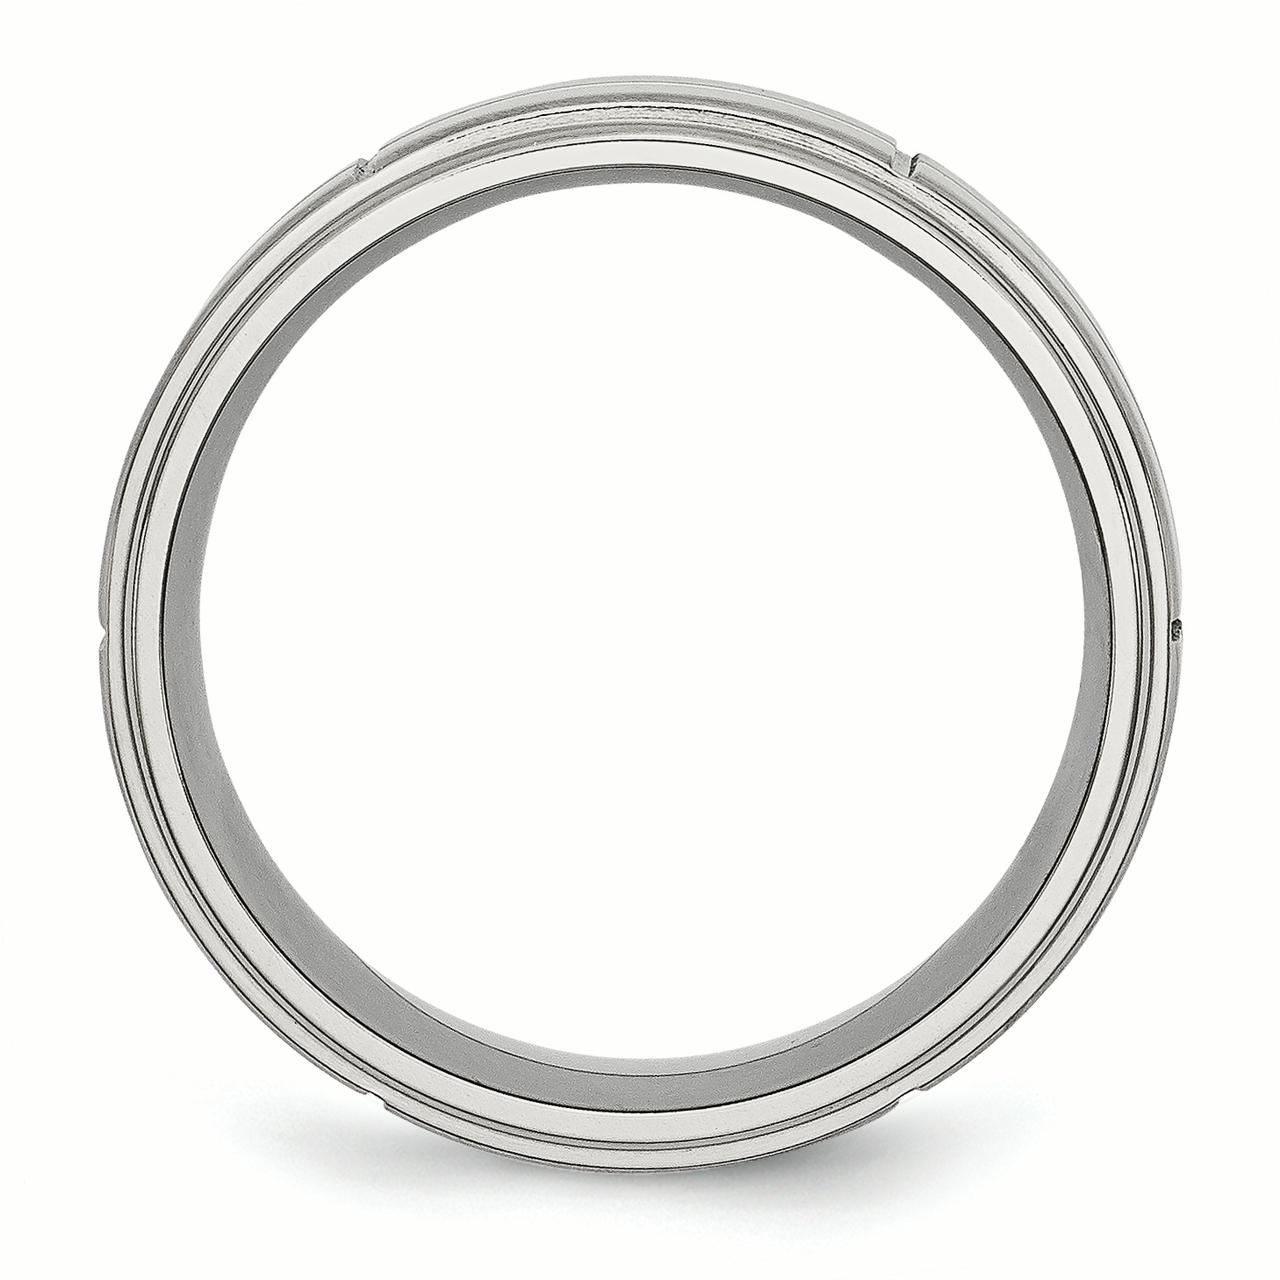 Stainless Steel Grooved 8mm Brushed/ Ridged Edge Wedding Ring Band Size 8.50 Fashion Jewelry Gifts For Women For Her - image 1 de 10